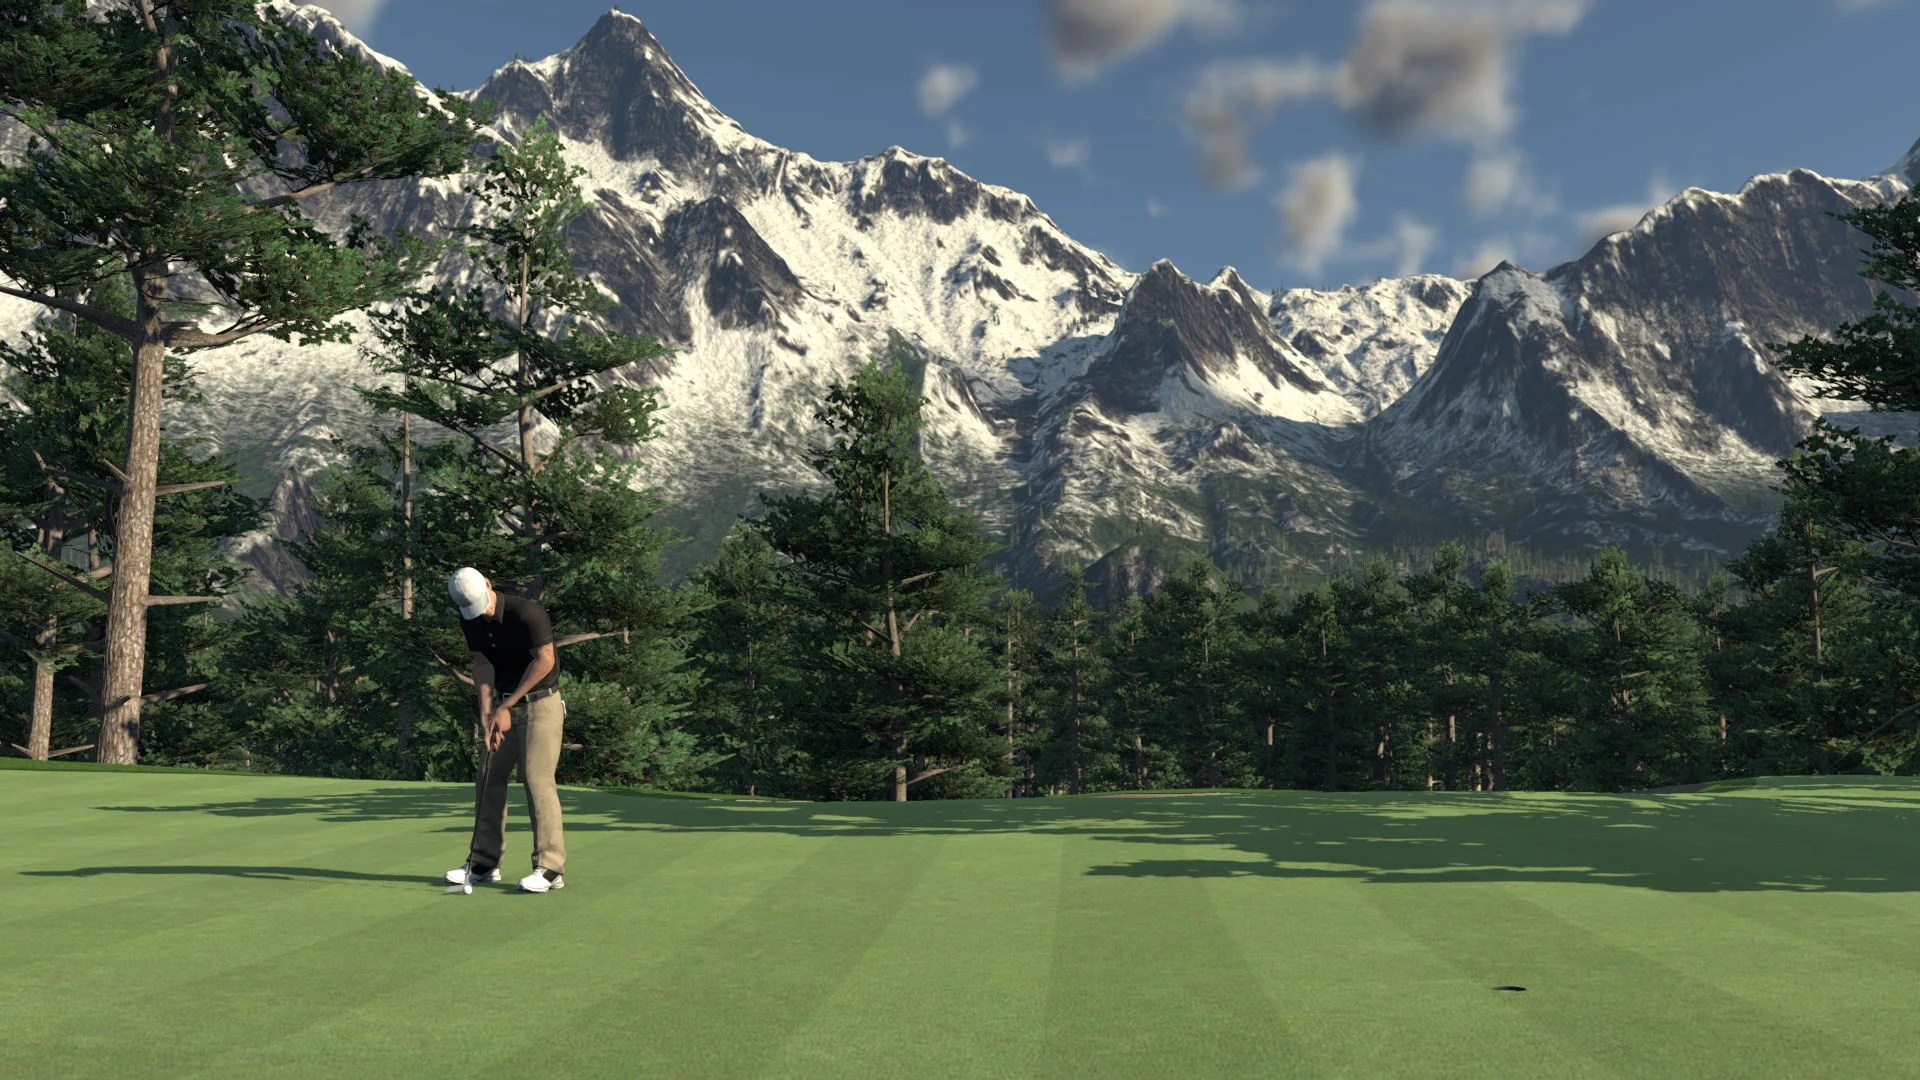 Windows 8 Official Wallpaper Hd The Golf Club Ps4 Playstation 4 News Reviews Trailer